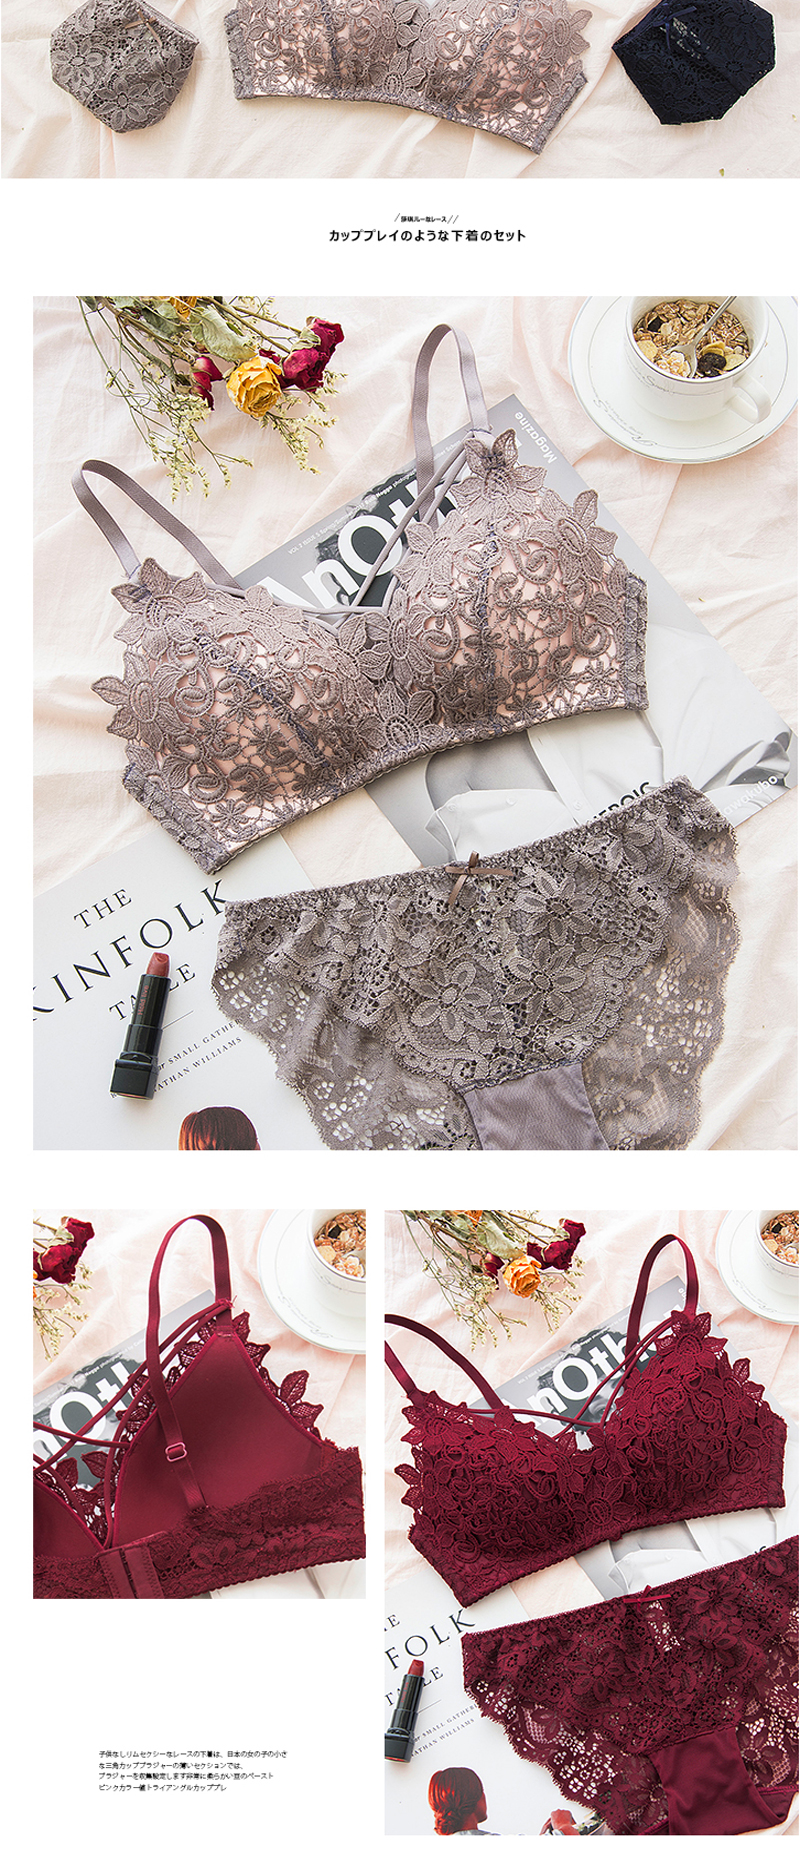 Lace Push Up Bra And Panty Set Triangle Cup Sexy Brassiere Bras For Small Breast Female Lingerie Set Underwear Women Bralette 5